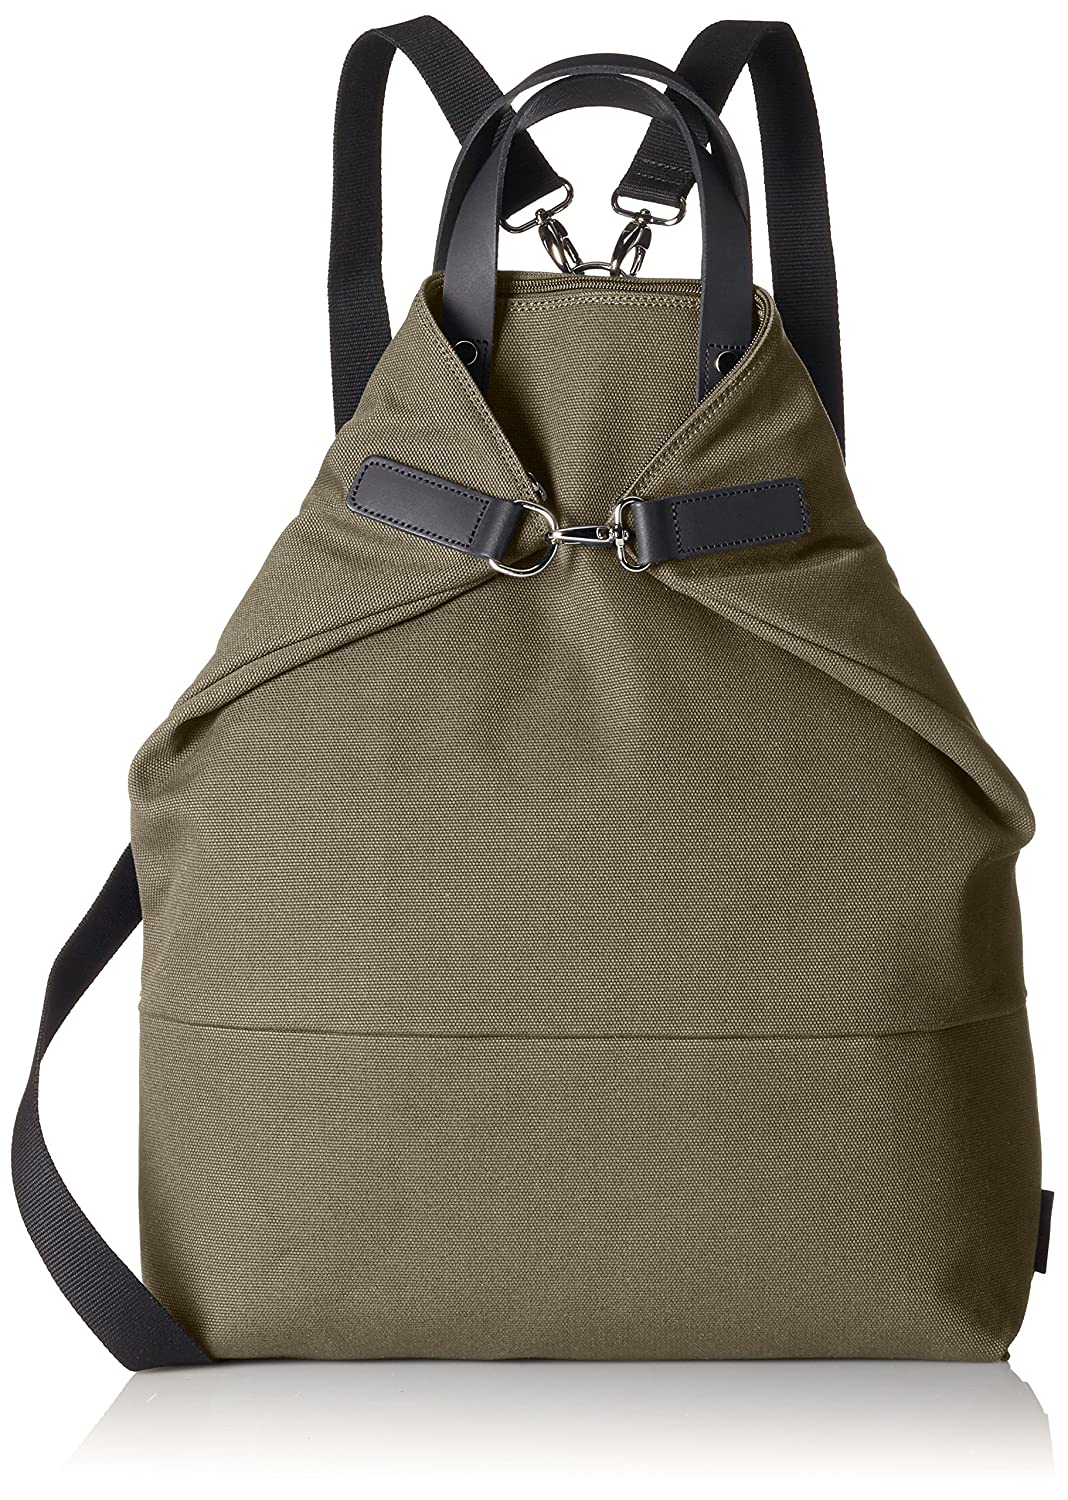 7170f745db889 Jost Lund X-Change 3-Way Bag Backpack 22.4 L Olive Green  Amazon.co.uk   Sports   Outdoors